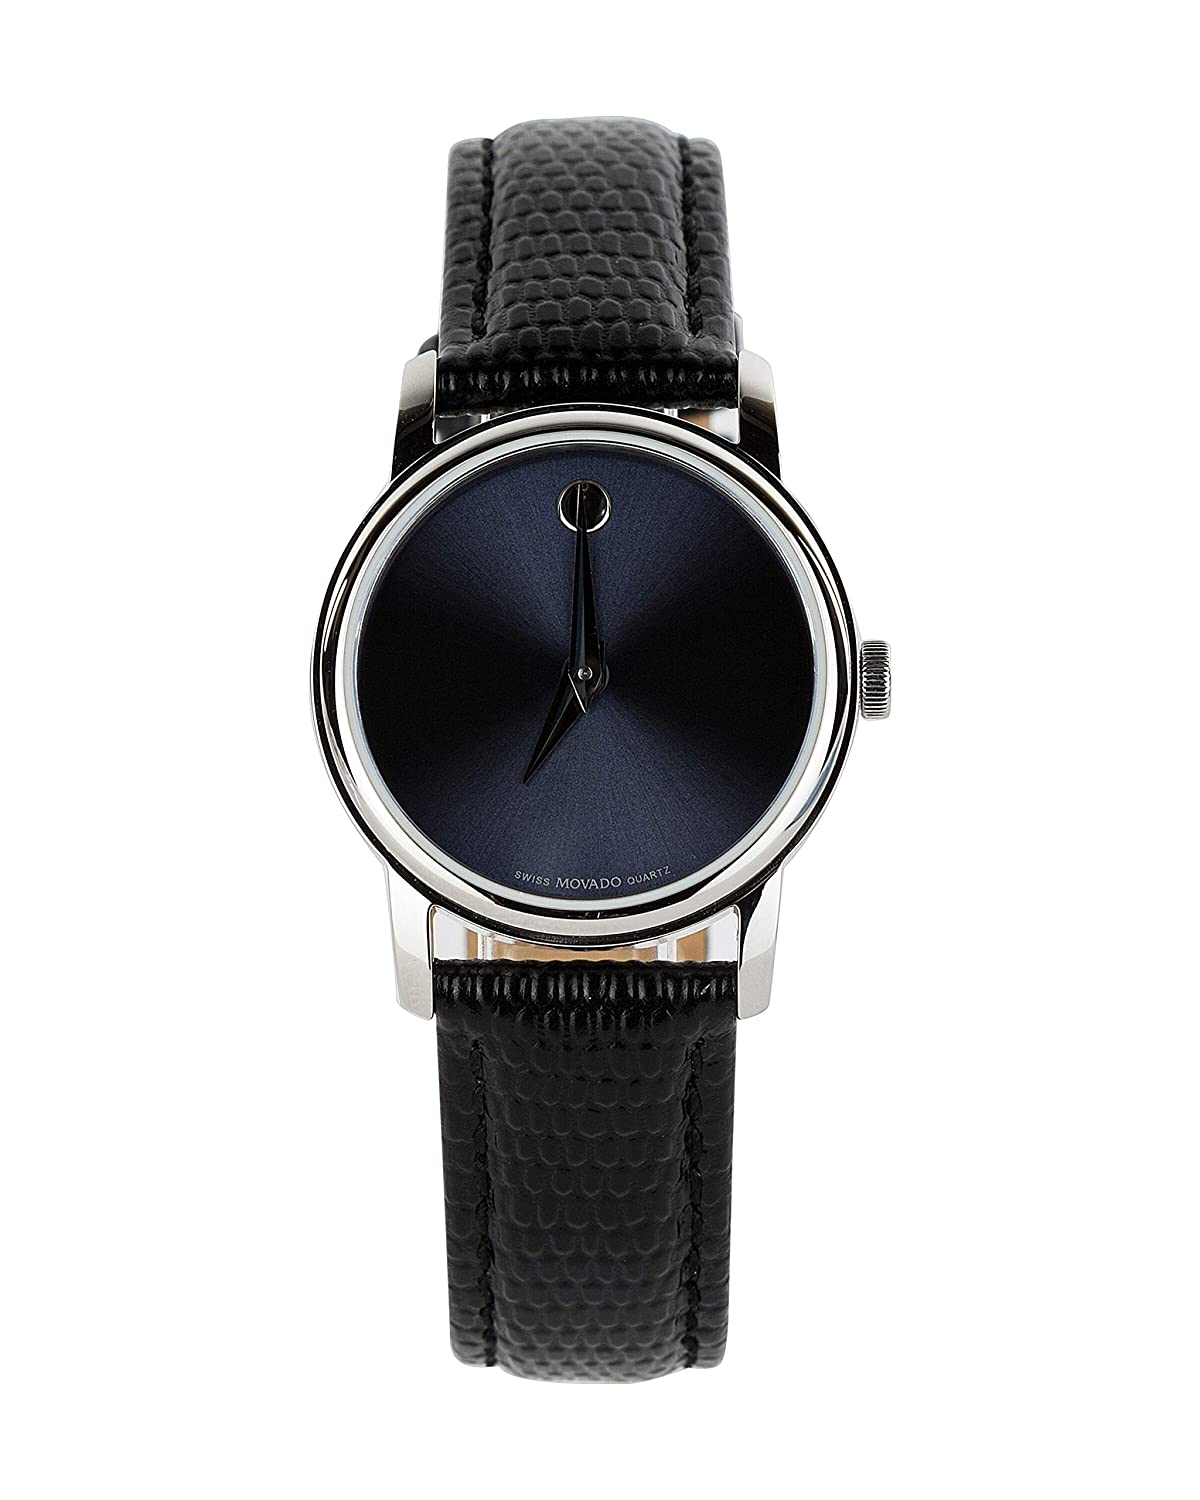 8c41af74a Amazon.com: Movado Museum Blue Dial Black Leather Strap Women's Swiss  Watch: Watches